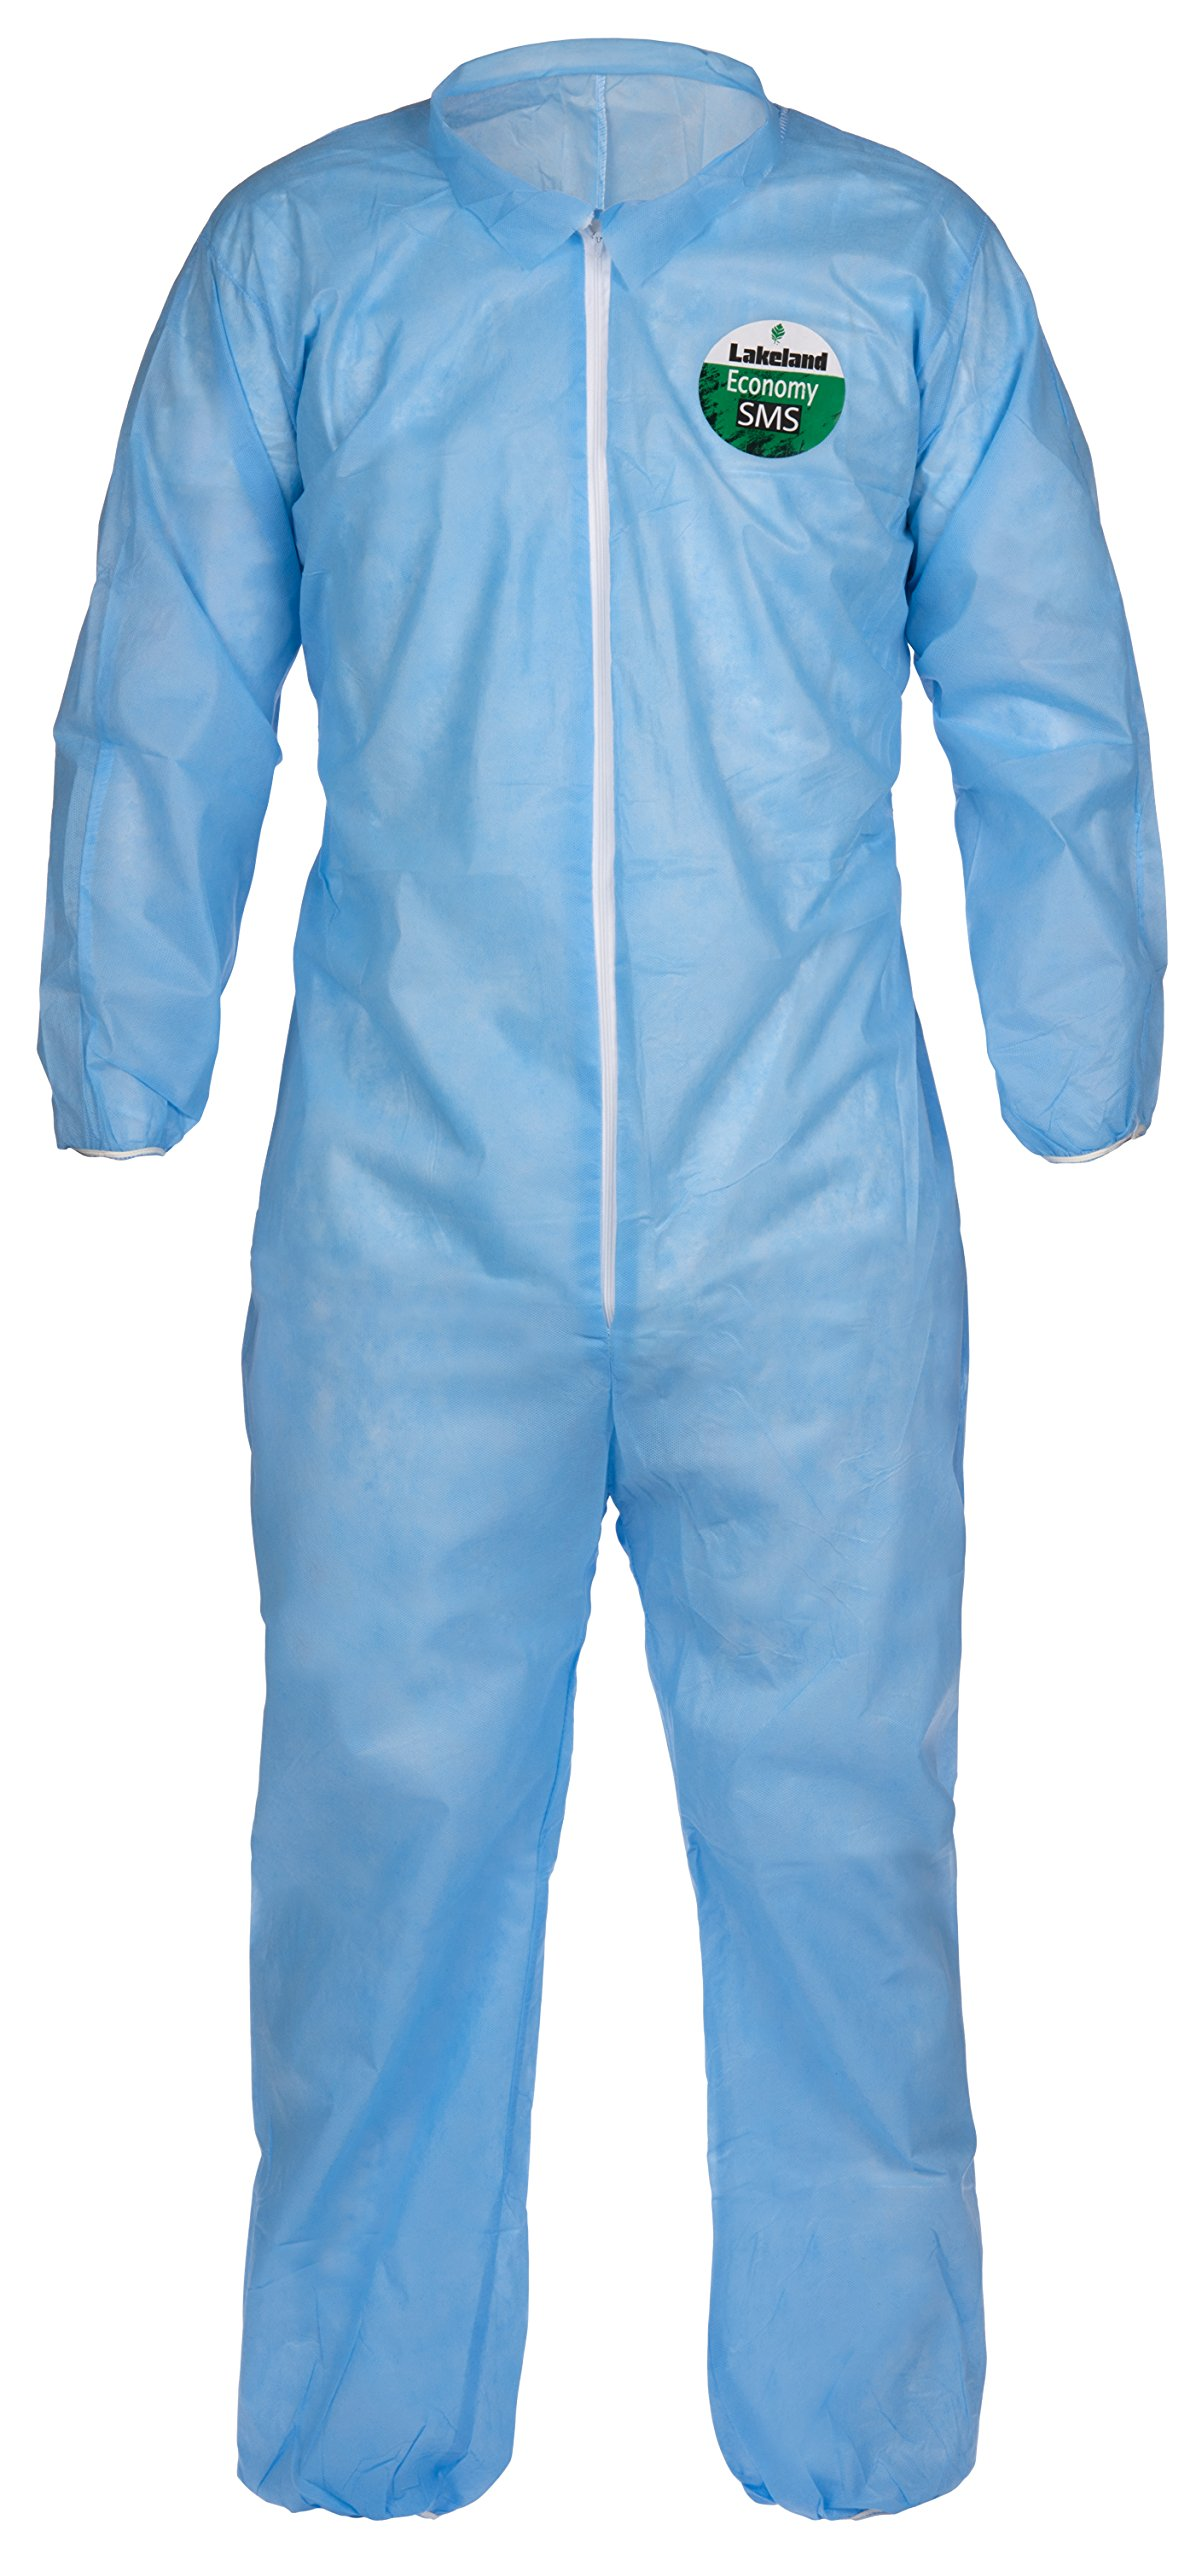 Lakeland SafeGard Economy SMS Coverall, Disposable, Elastic Cuff, 2X-Large, Blue (Case of 25) by Lakeland Industries Inc